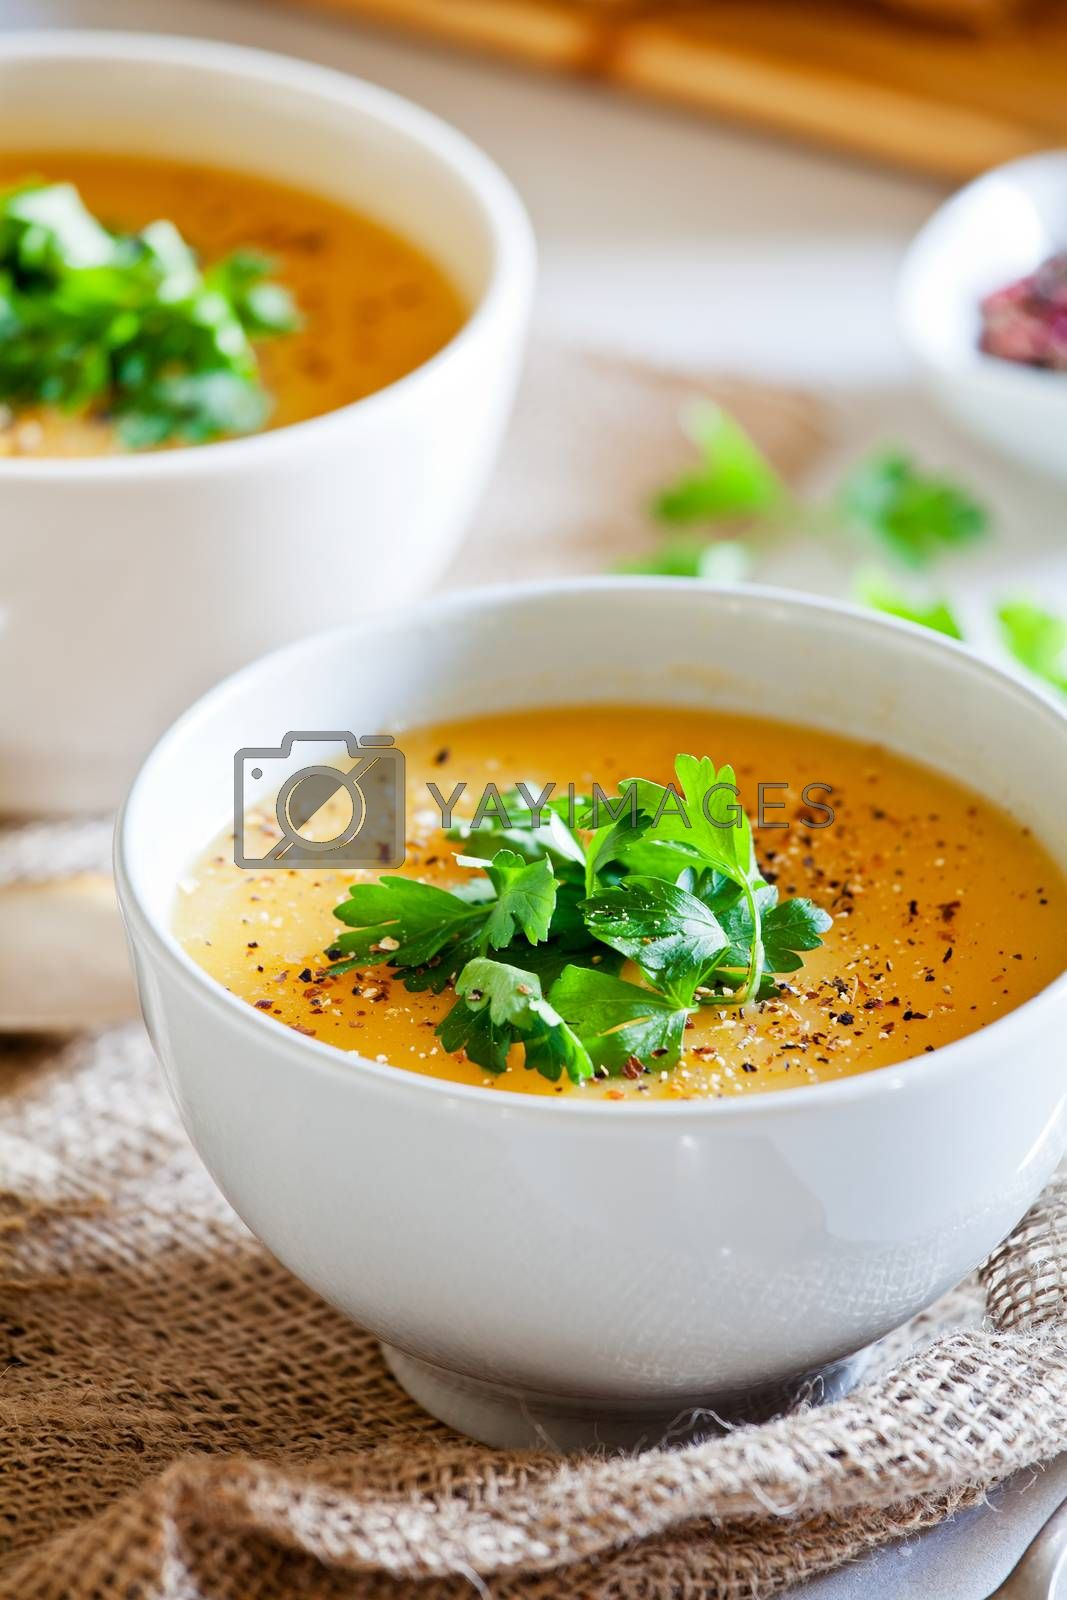 Couple of bowls of homemade vegetarian soup